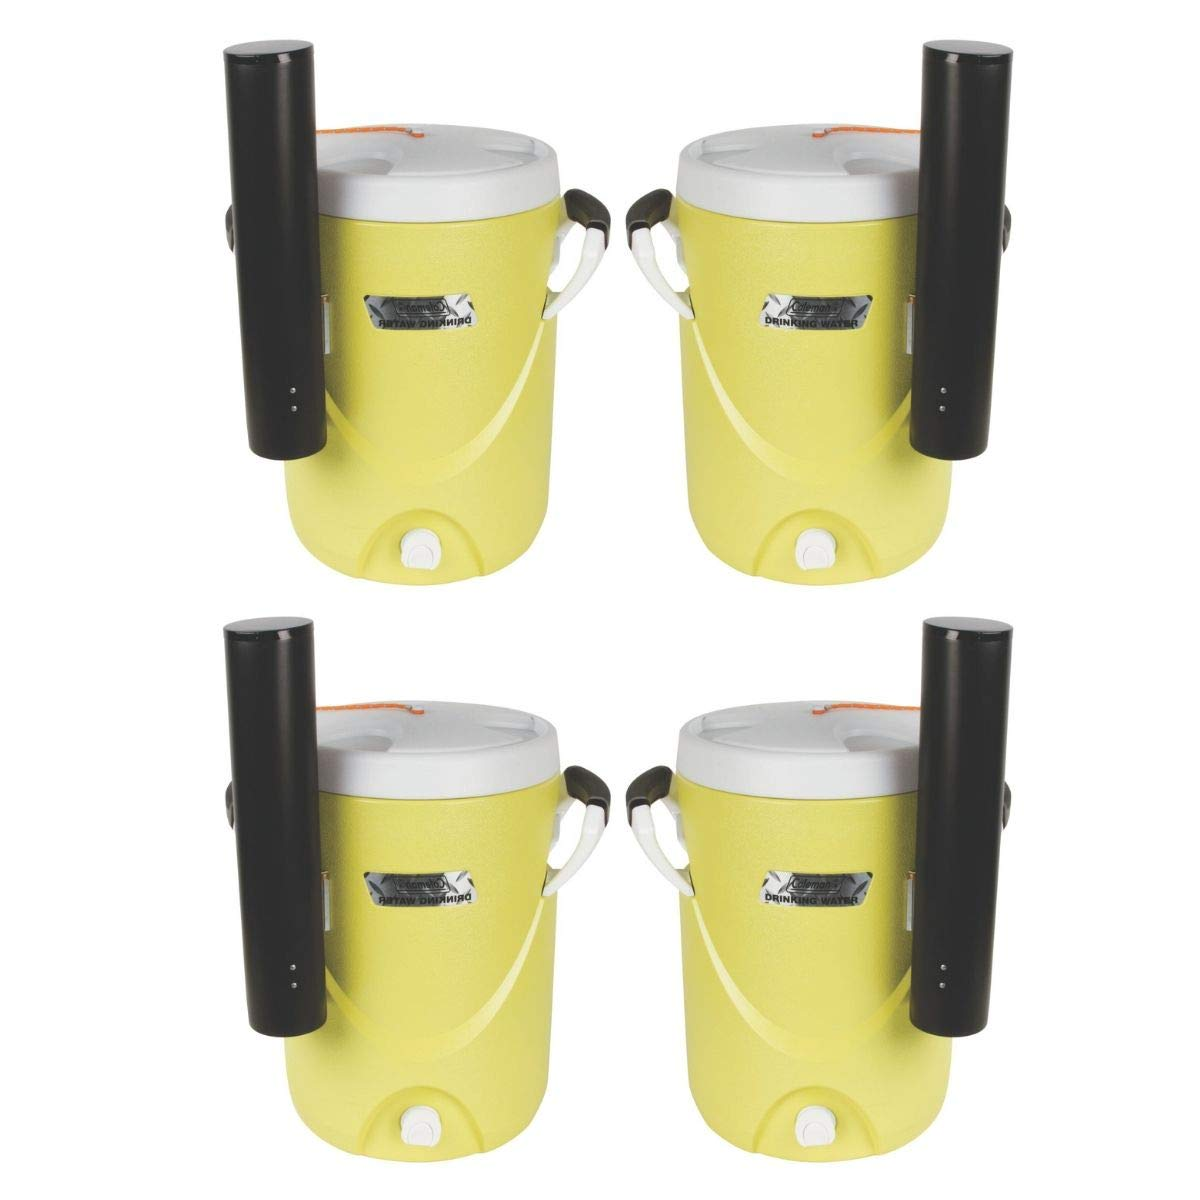 Coleman 3000004064 Beverage Cooler,5 gal,Plastic G4326485 (Yellow/Set of 4)